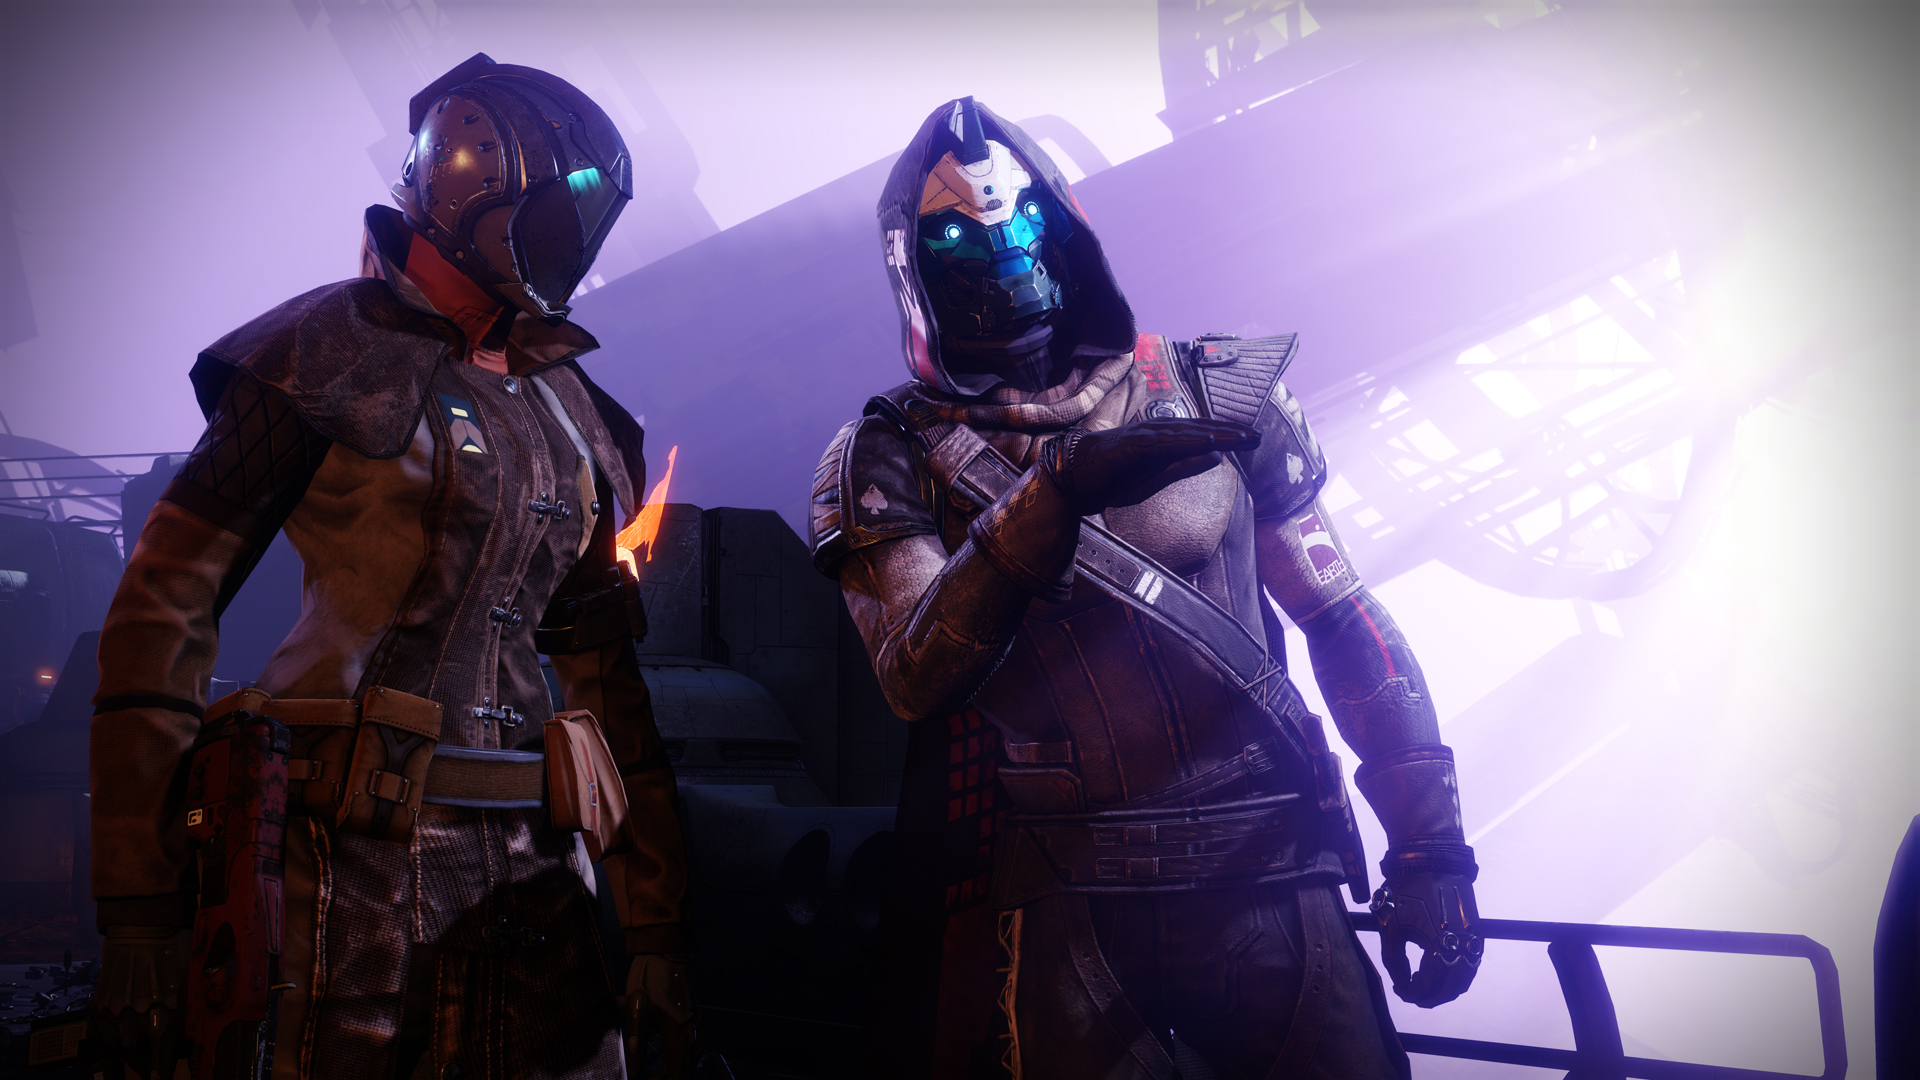 f4c8cfa27ee Destiny 2  Forsaken - Everything you need to know about Bungie s shooter  (but were afraid to ask)